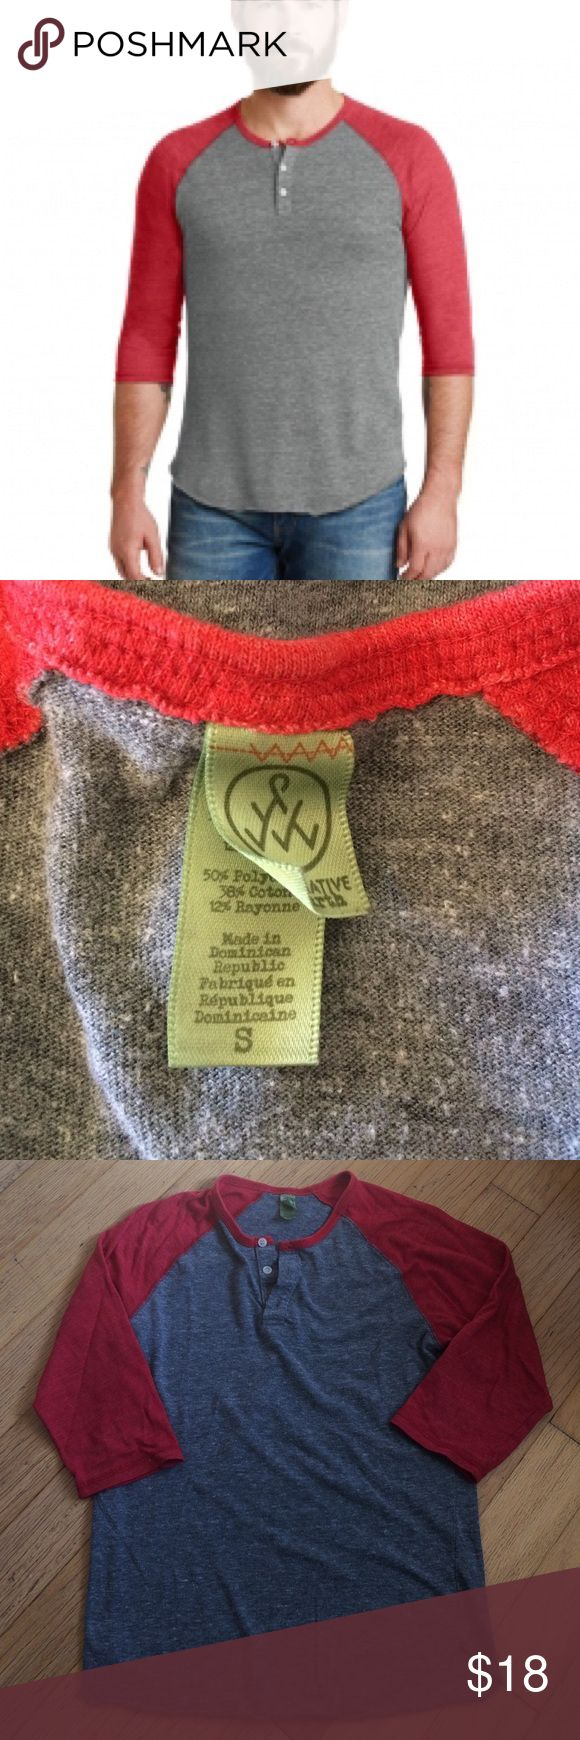 Alternative apparel men's gray and red Henley! Alternative apparel men's gray and red raglan Henley! Size small. Pre loved but in great condition! Super soft. Bundle and save! Alternative Apparel Shirts Tees - Long Sleeve